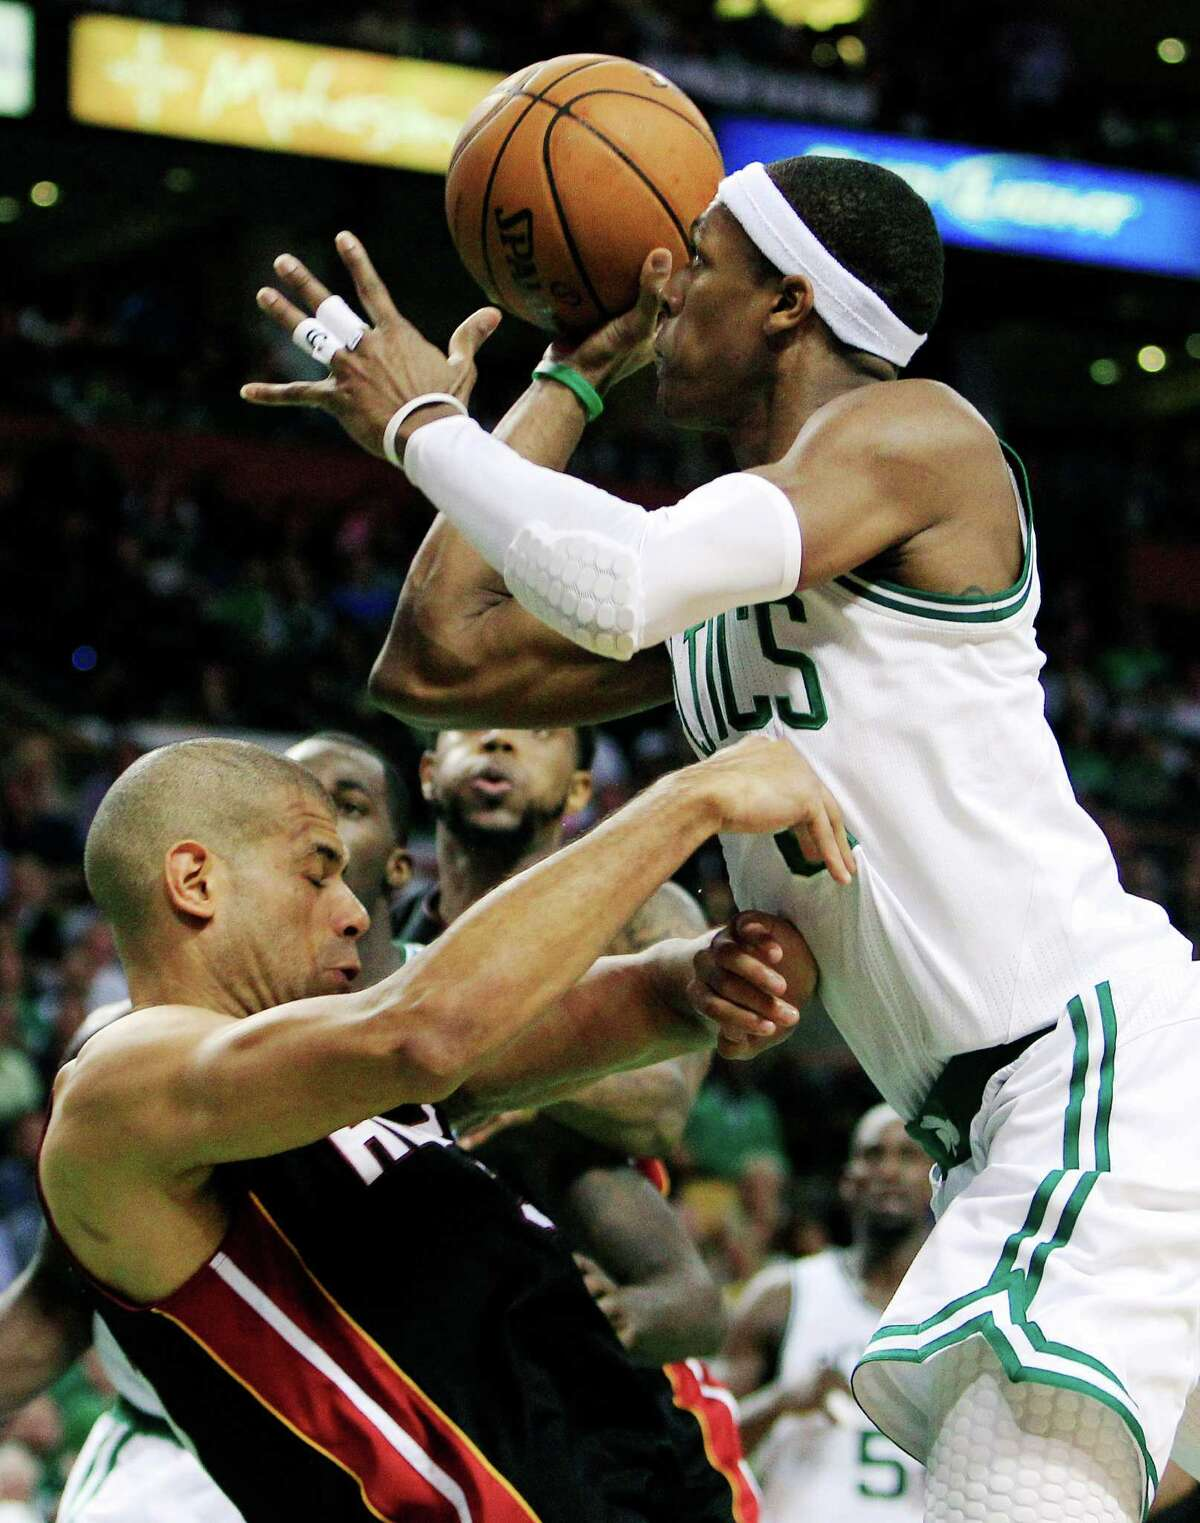 Boston Celtics guard Rajon Rondo, right, shoots over Miami Heat forward Shane Battier, left, during the second quarter of Game 4 in their NBA basketball Eastern Conference finals playoff series in Boston, Sunday, June 3, 2012.